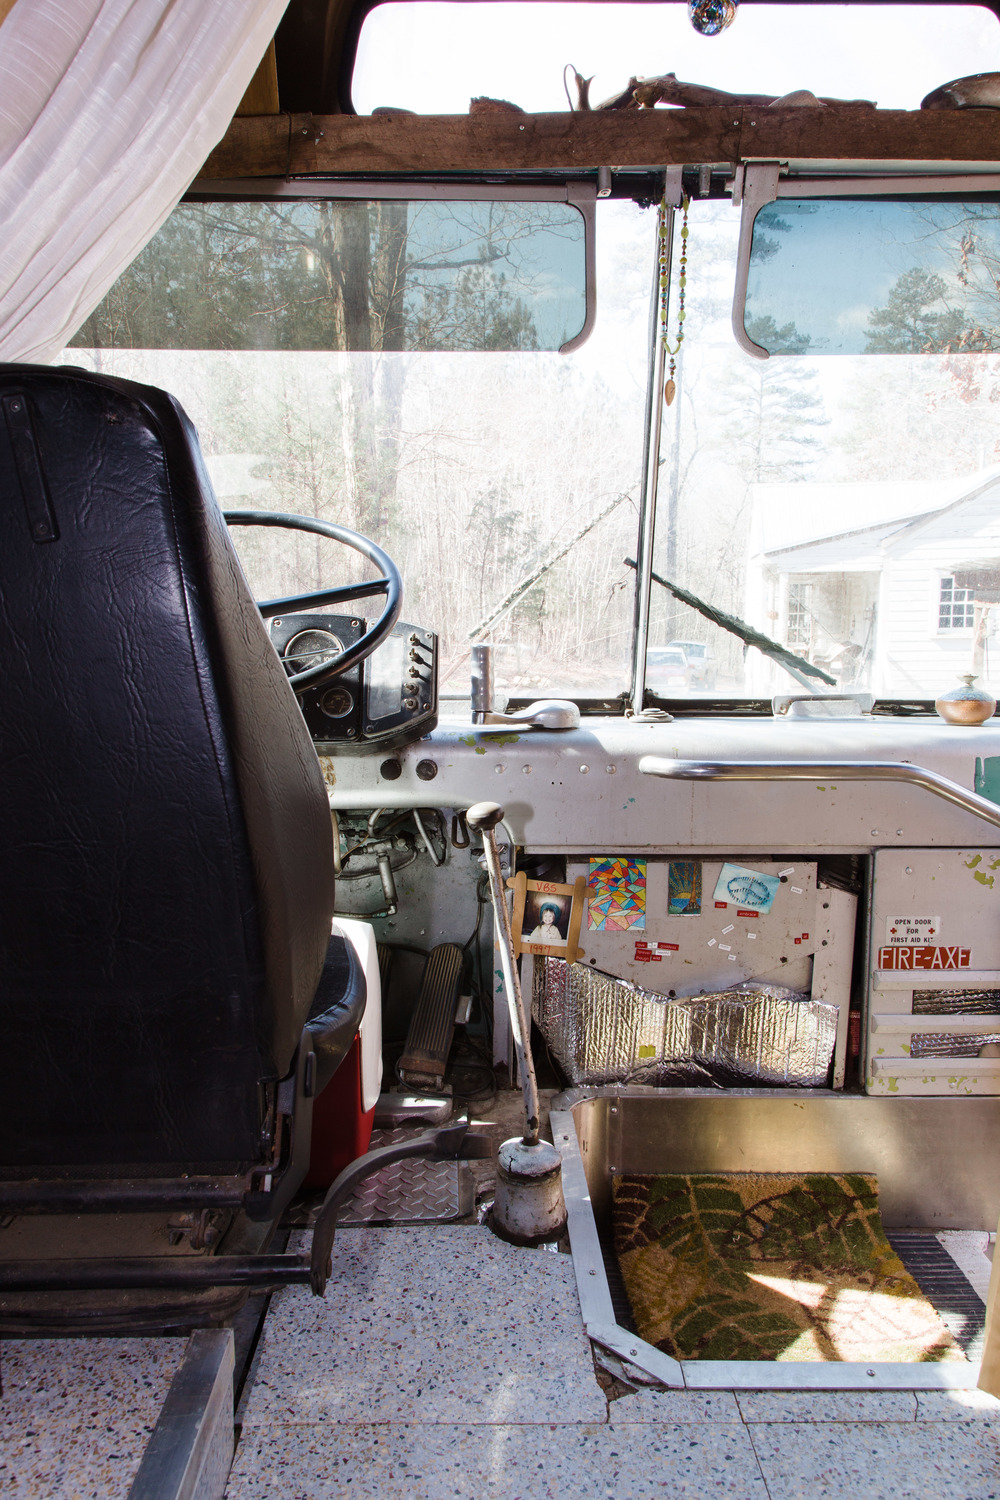 Bus Airbnb, Pittsboro North Carolina